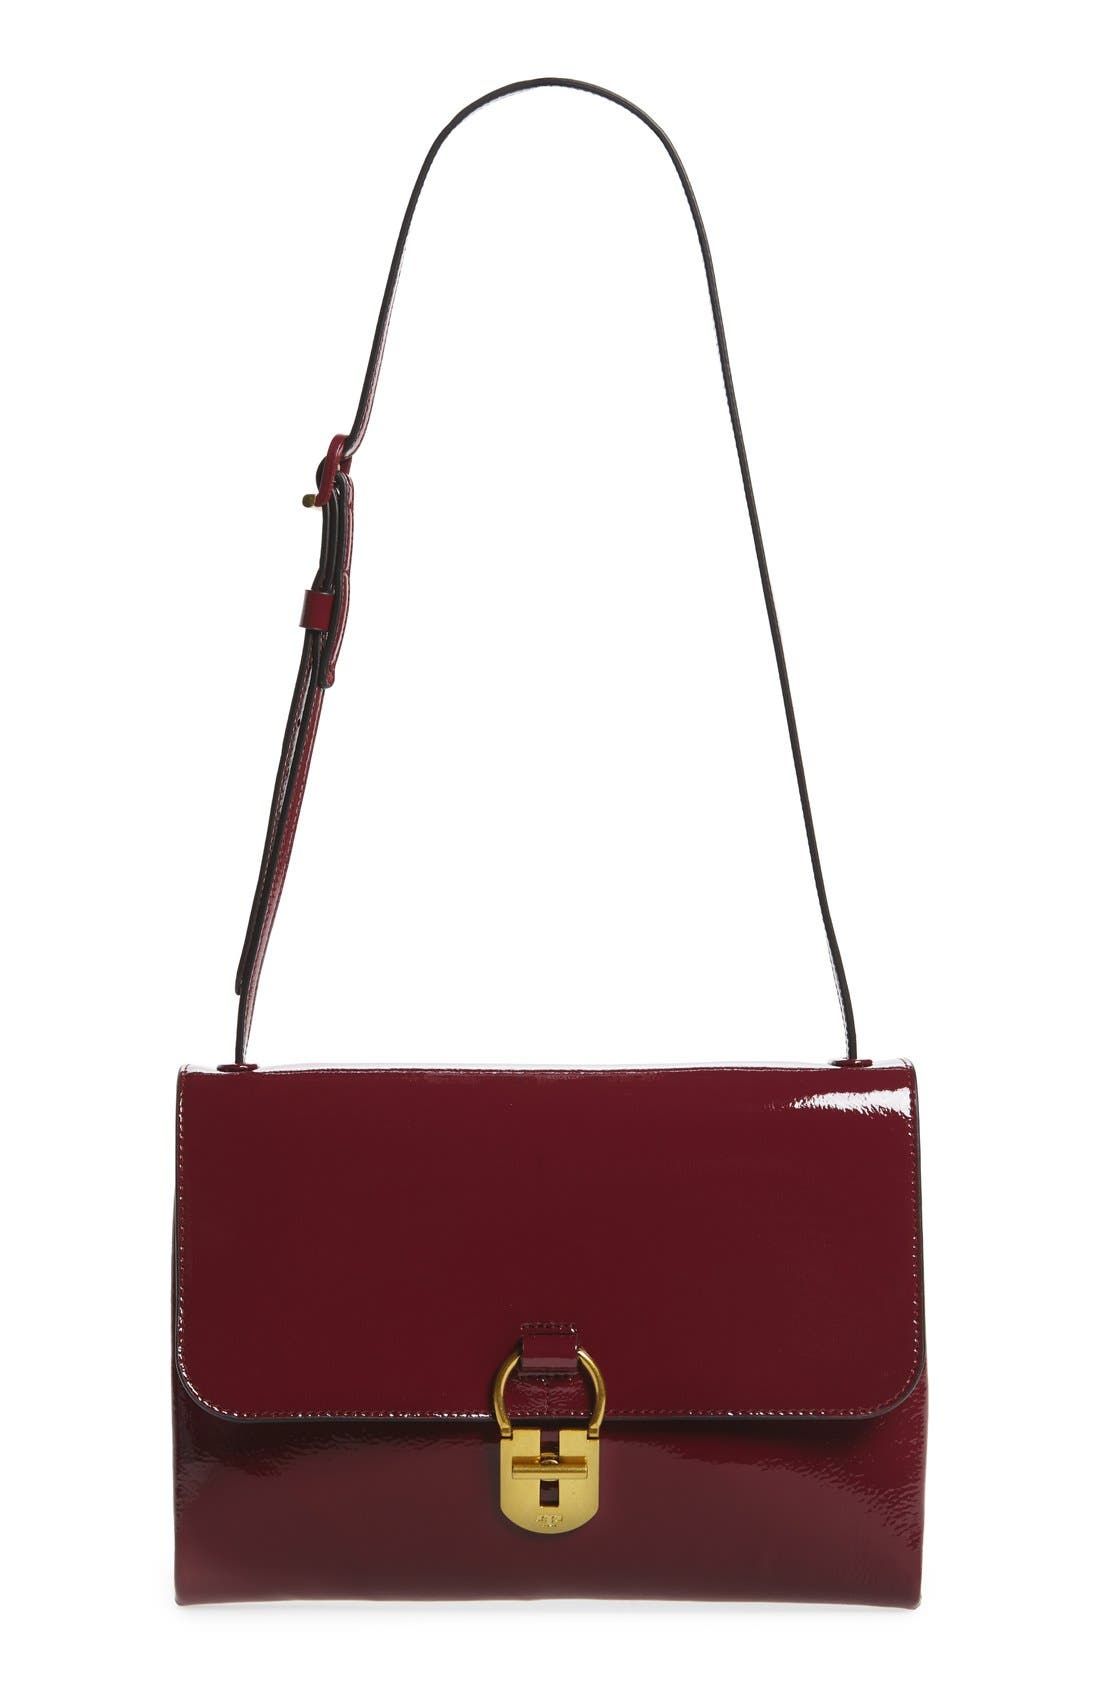 Main Image - Tory Burch Patent Leather Convertible Shoulder Bag